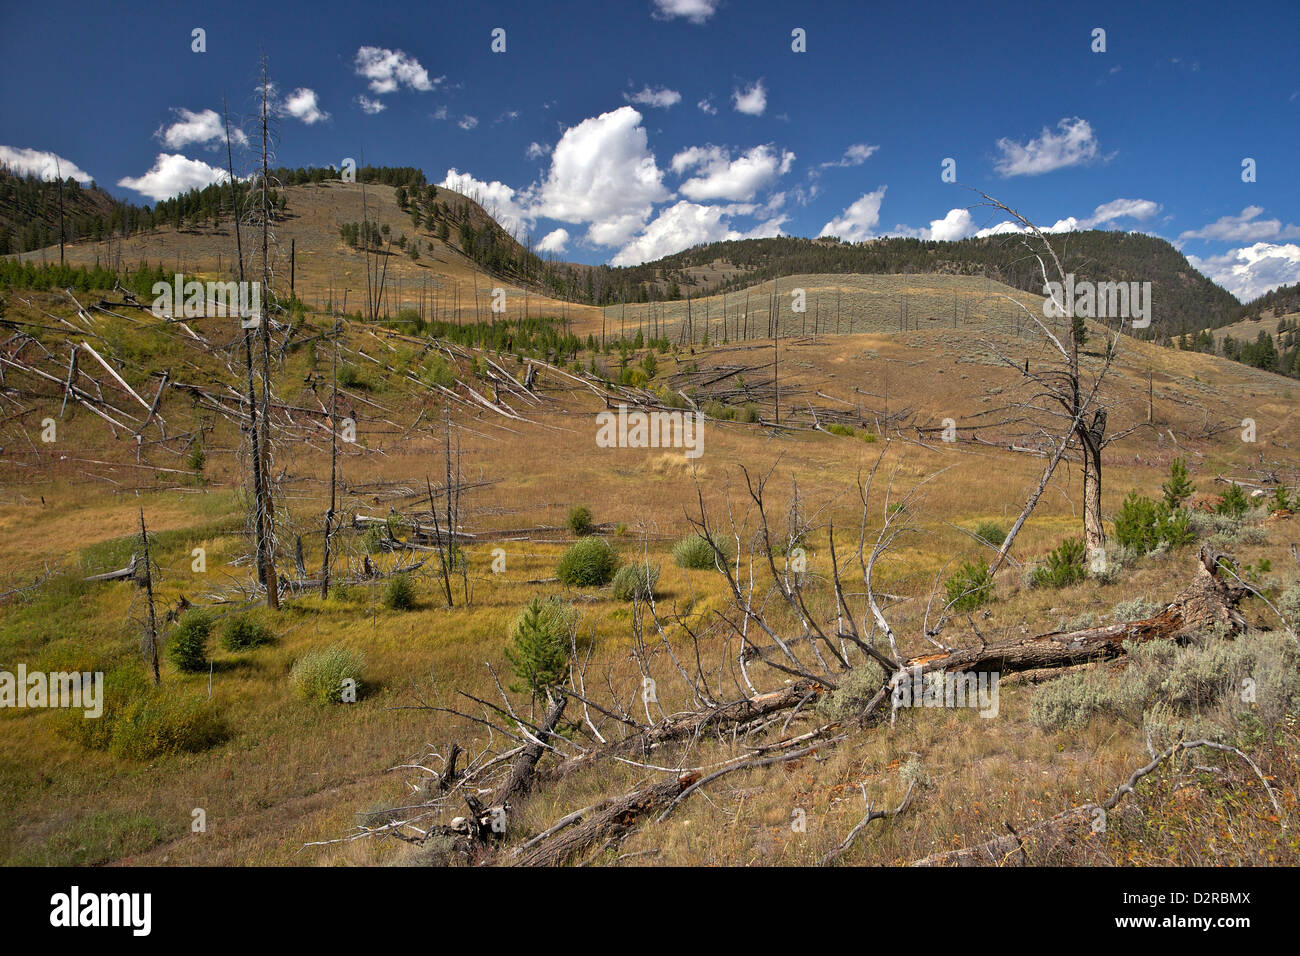 Trunks of lodgepole pines on Blacktail Deer Plateau, Yellowstone National Park, Wyoming, USA - Stock Image